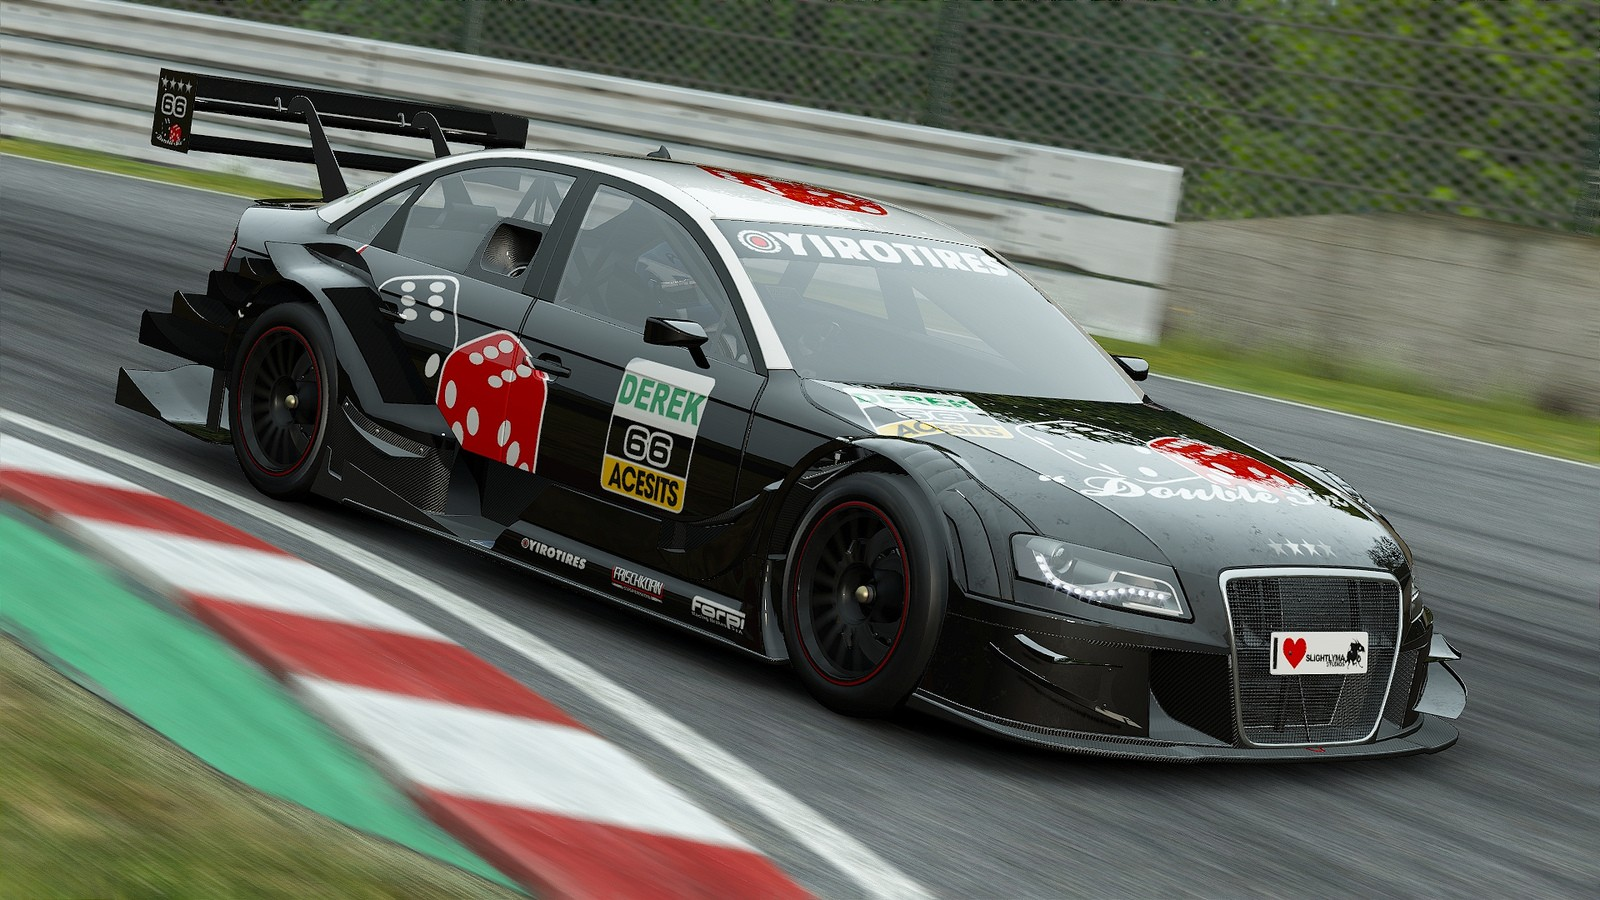 Project Cars Is Targeting 1080p 60FPS On Both Xbox One And PlayStation 4